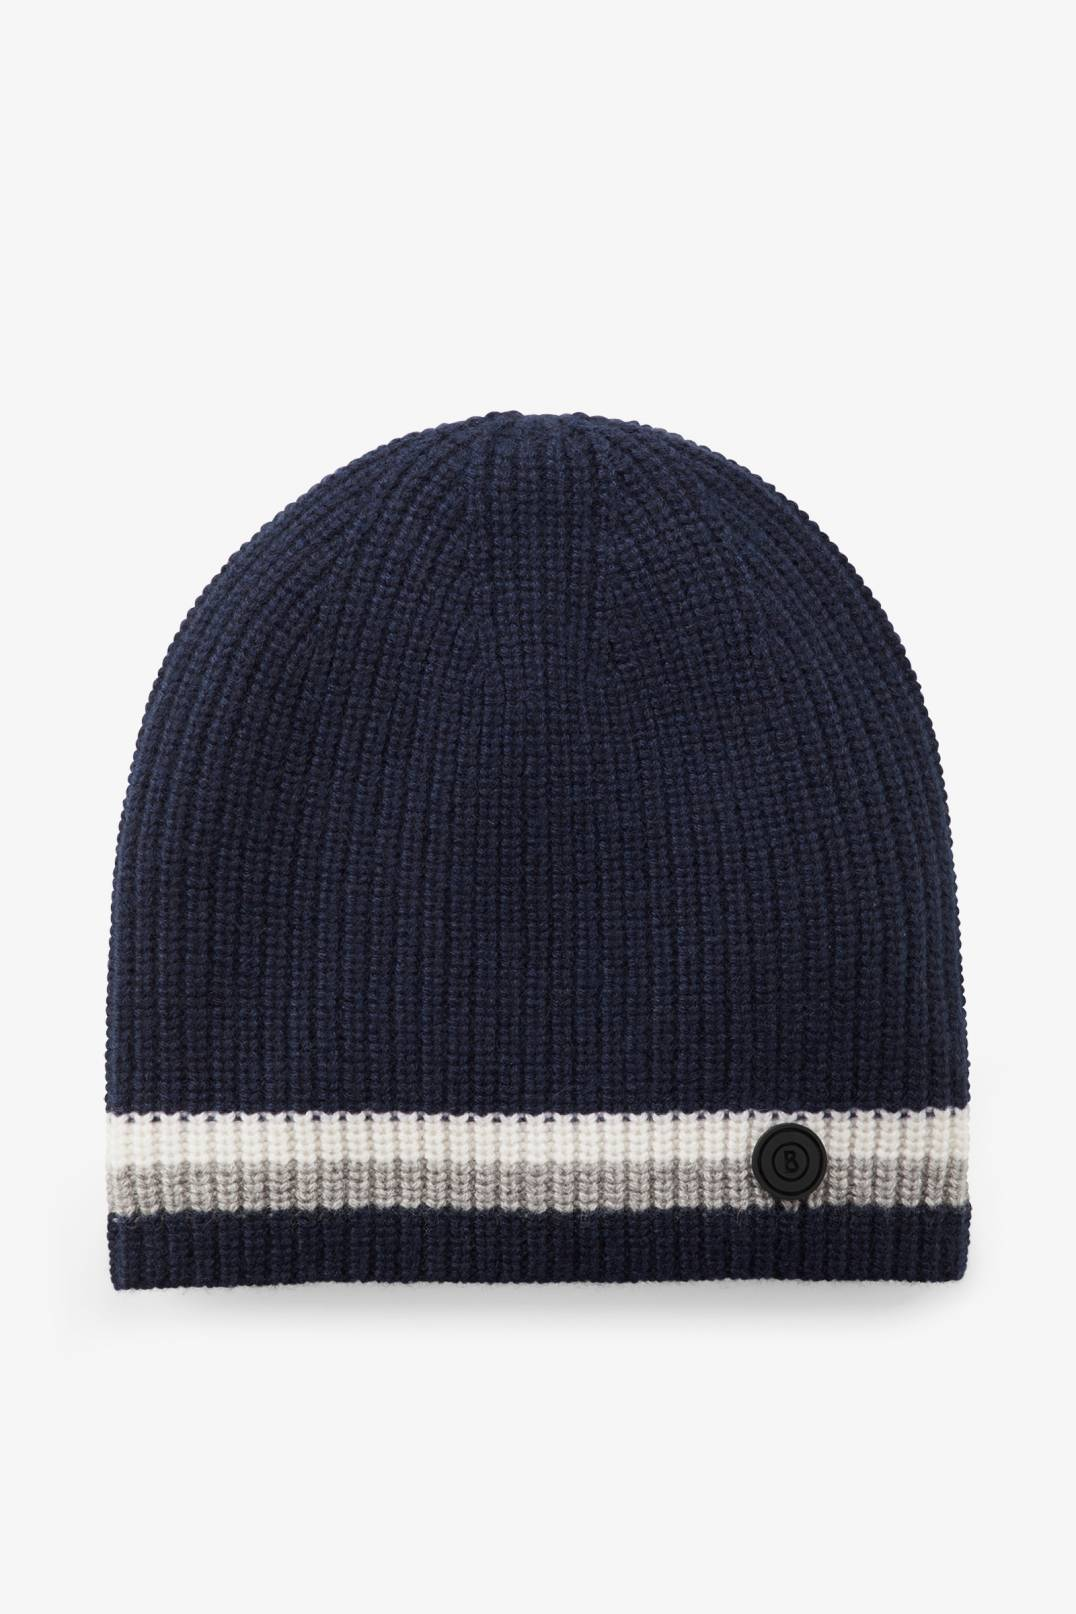 48362126e00 Bogner Sport Matteo Knitted beanie in Navy blue for Men